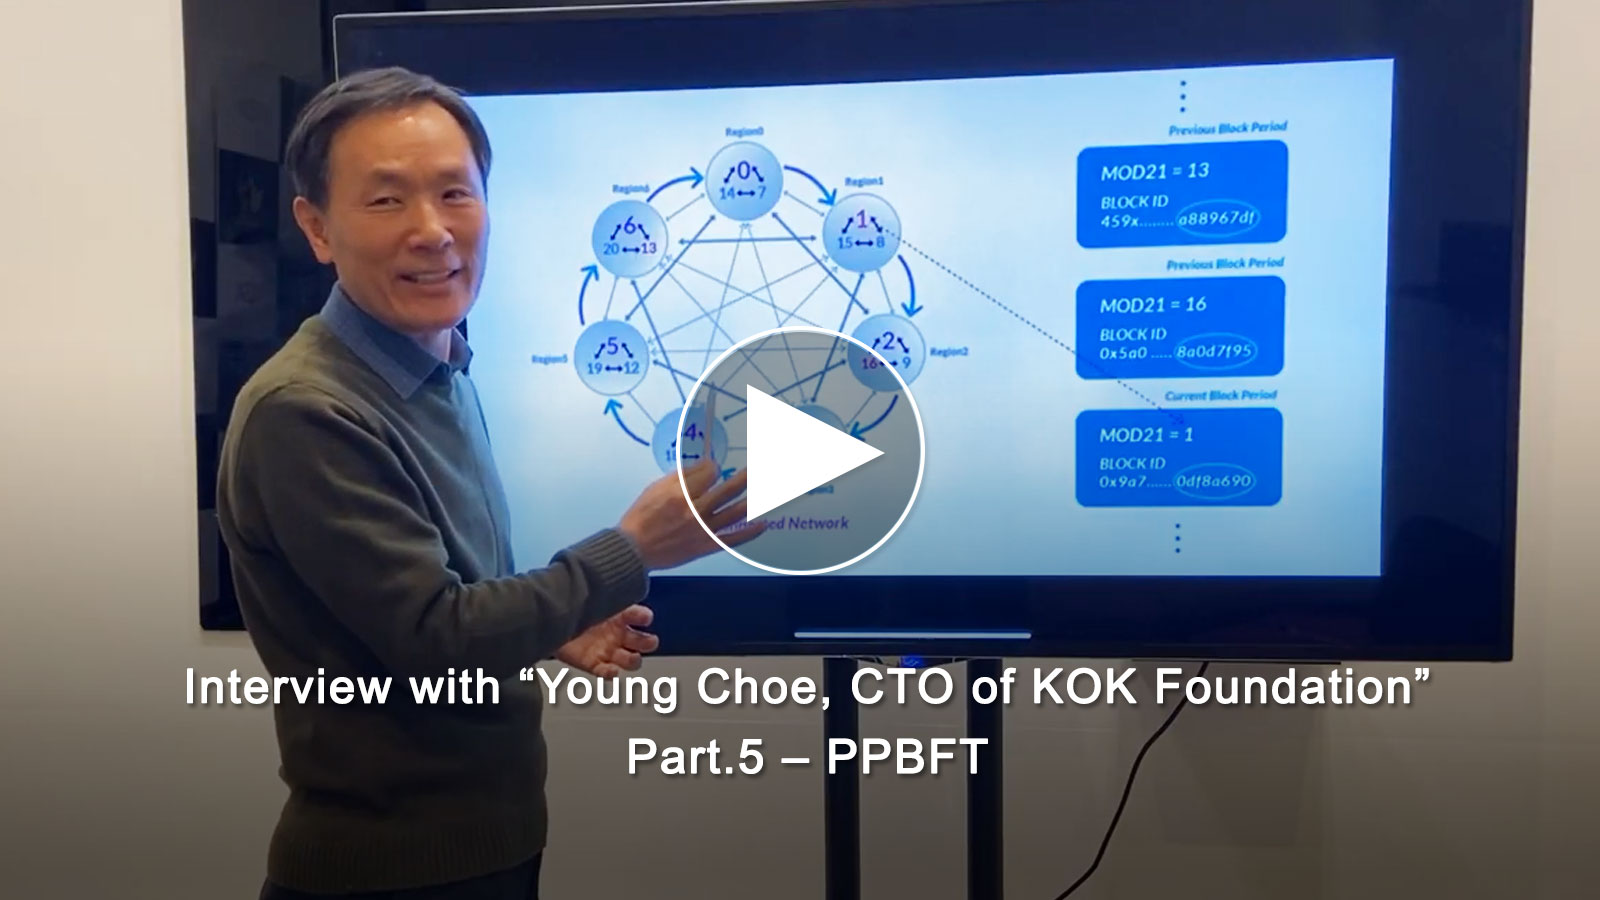 Interview with CTO Young Choe Part.5 - PPBFT